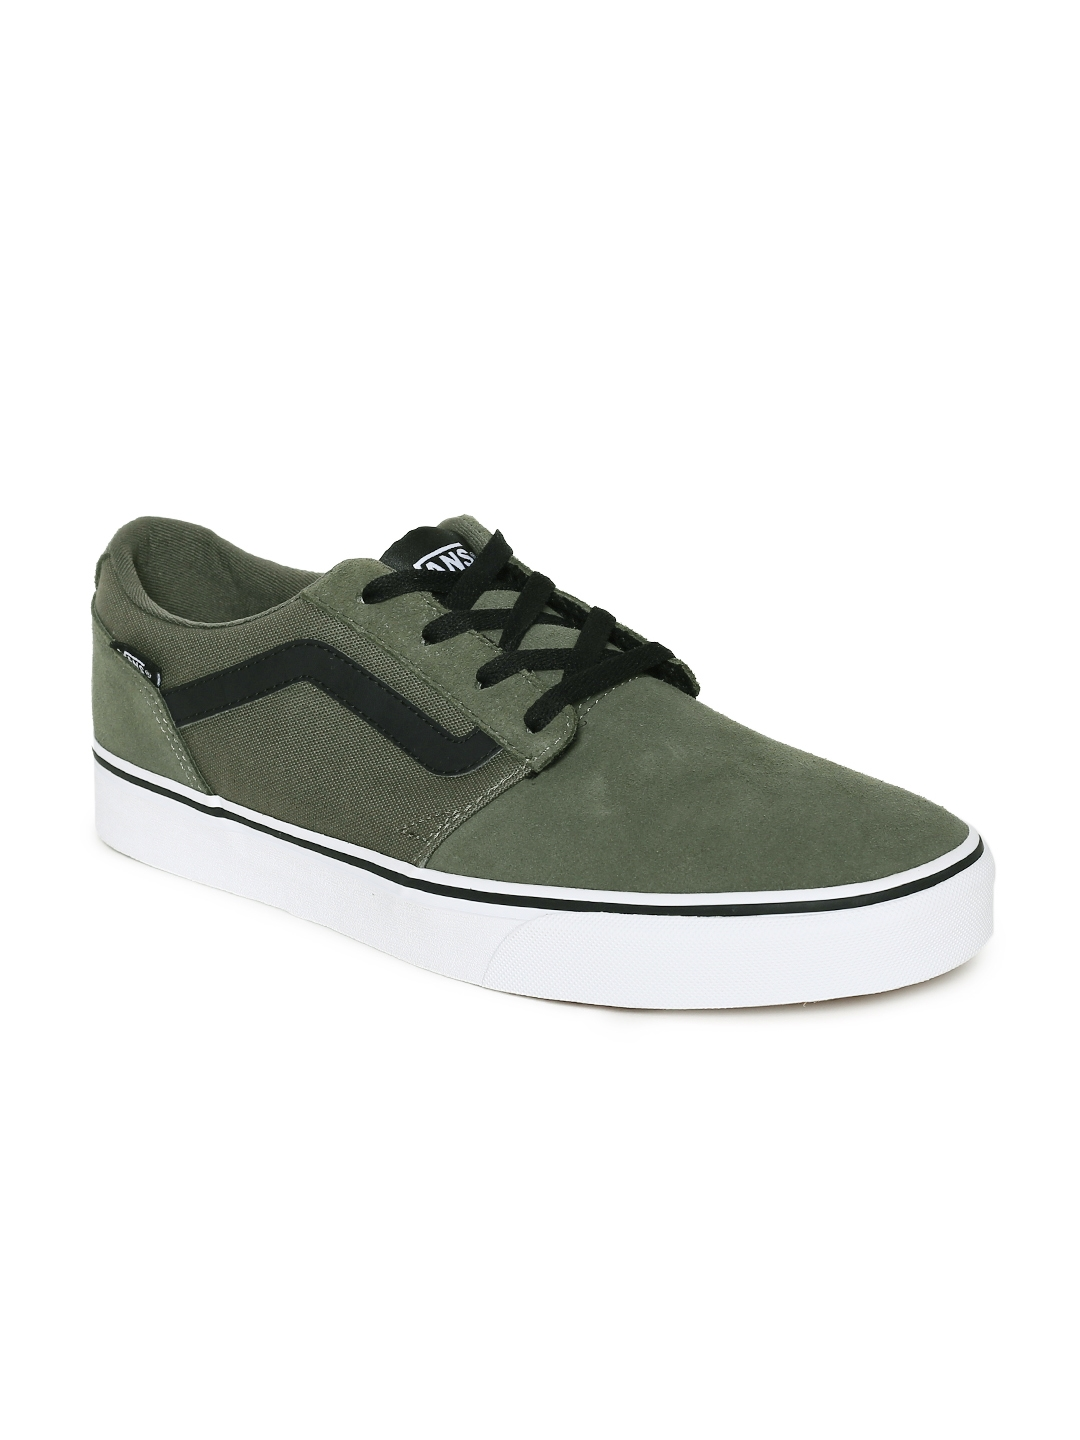 2517bd7de7 Buy Vans Men Olive Green Suede Chapman Stripe Sneakers - Casual ...